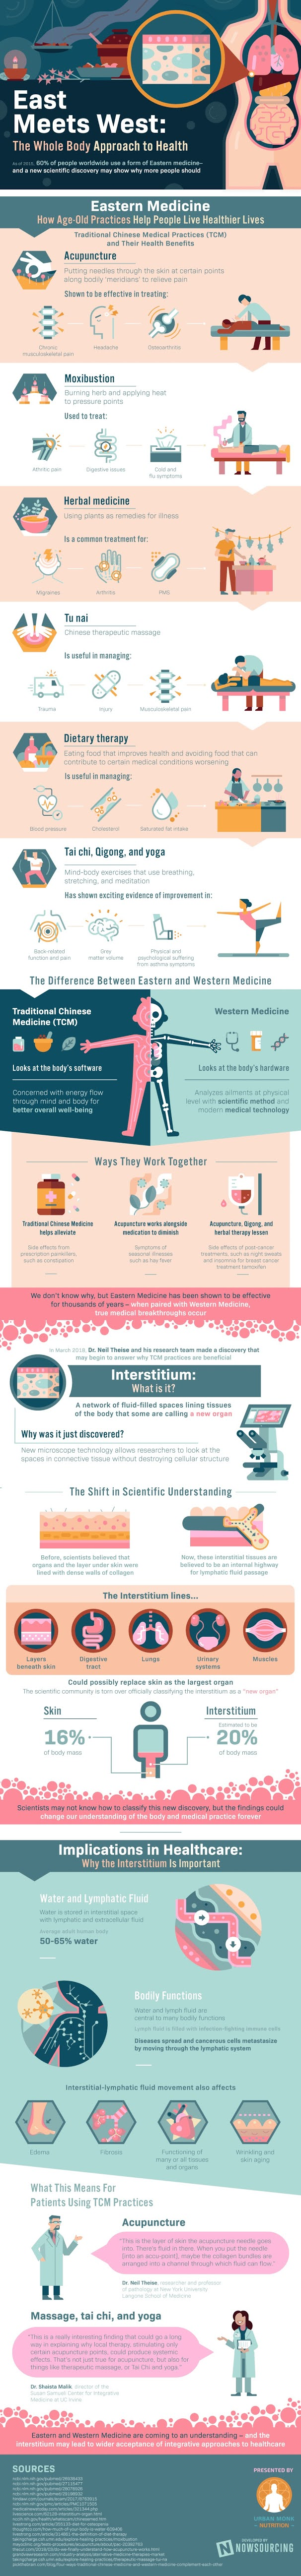 East Meets West: The Whole Body Approach to Health #infographic #Health #Eastern Medicine #Medicine